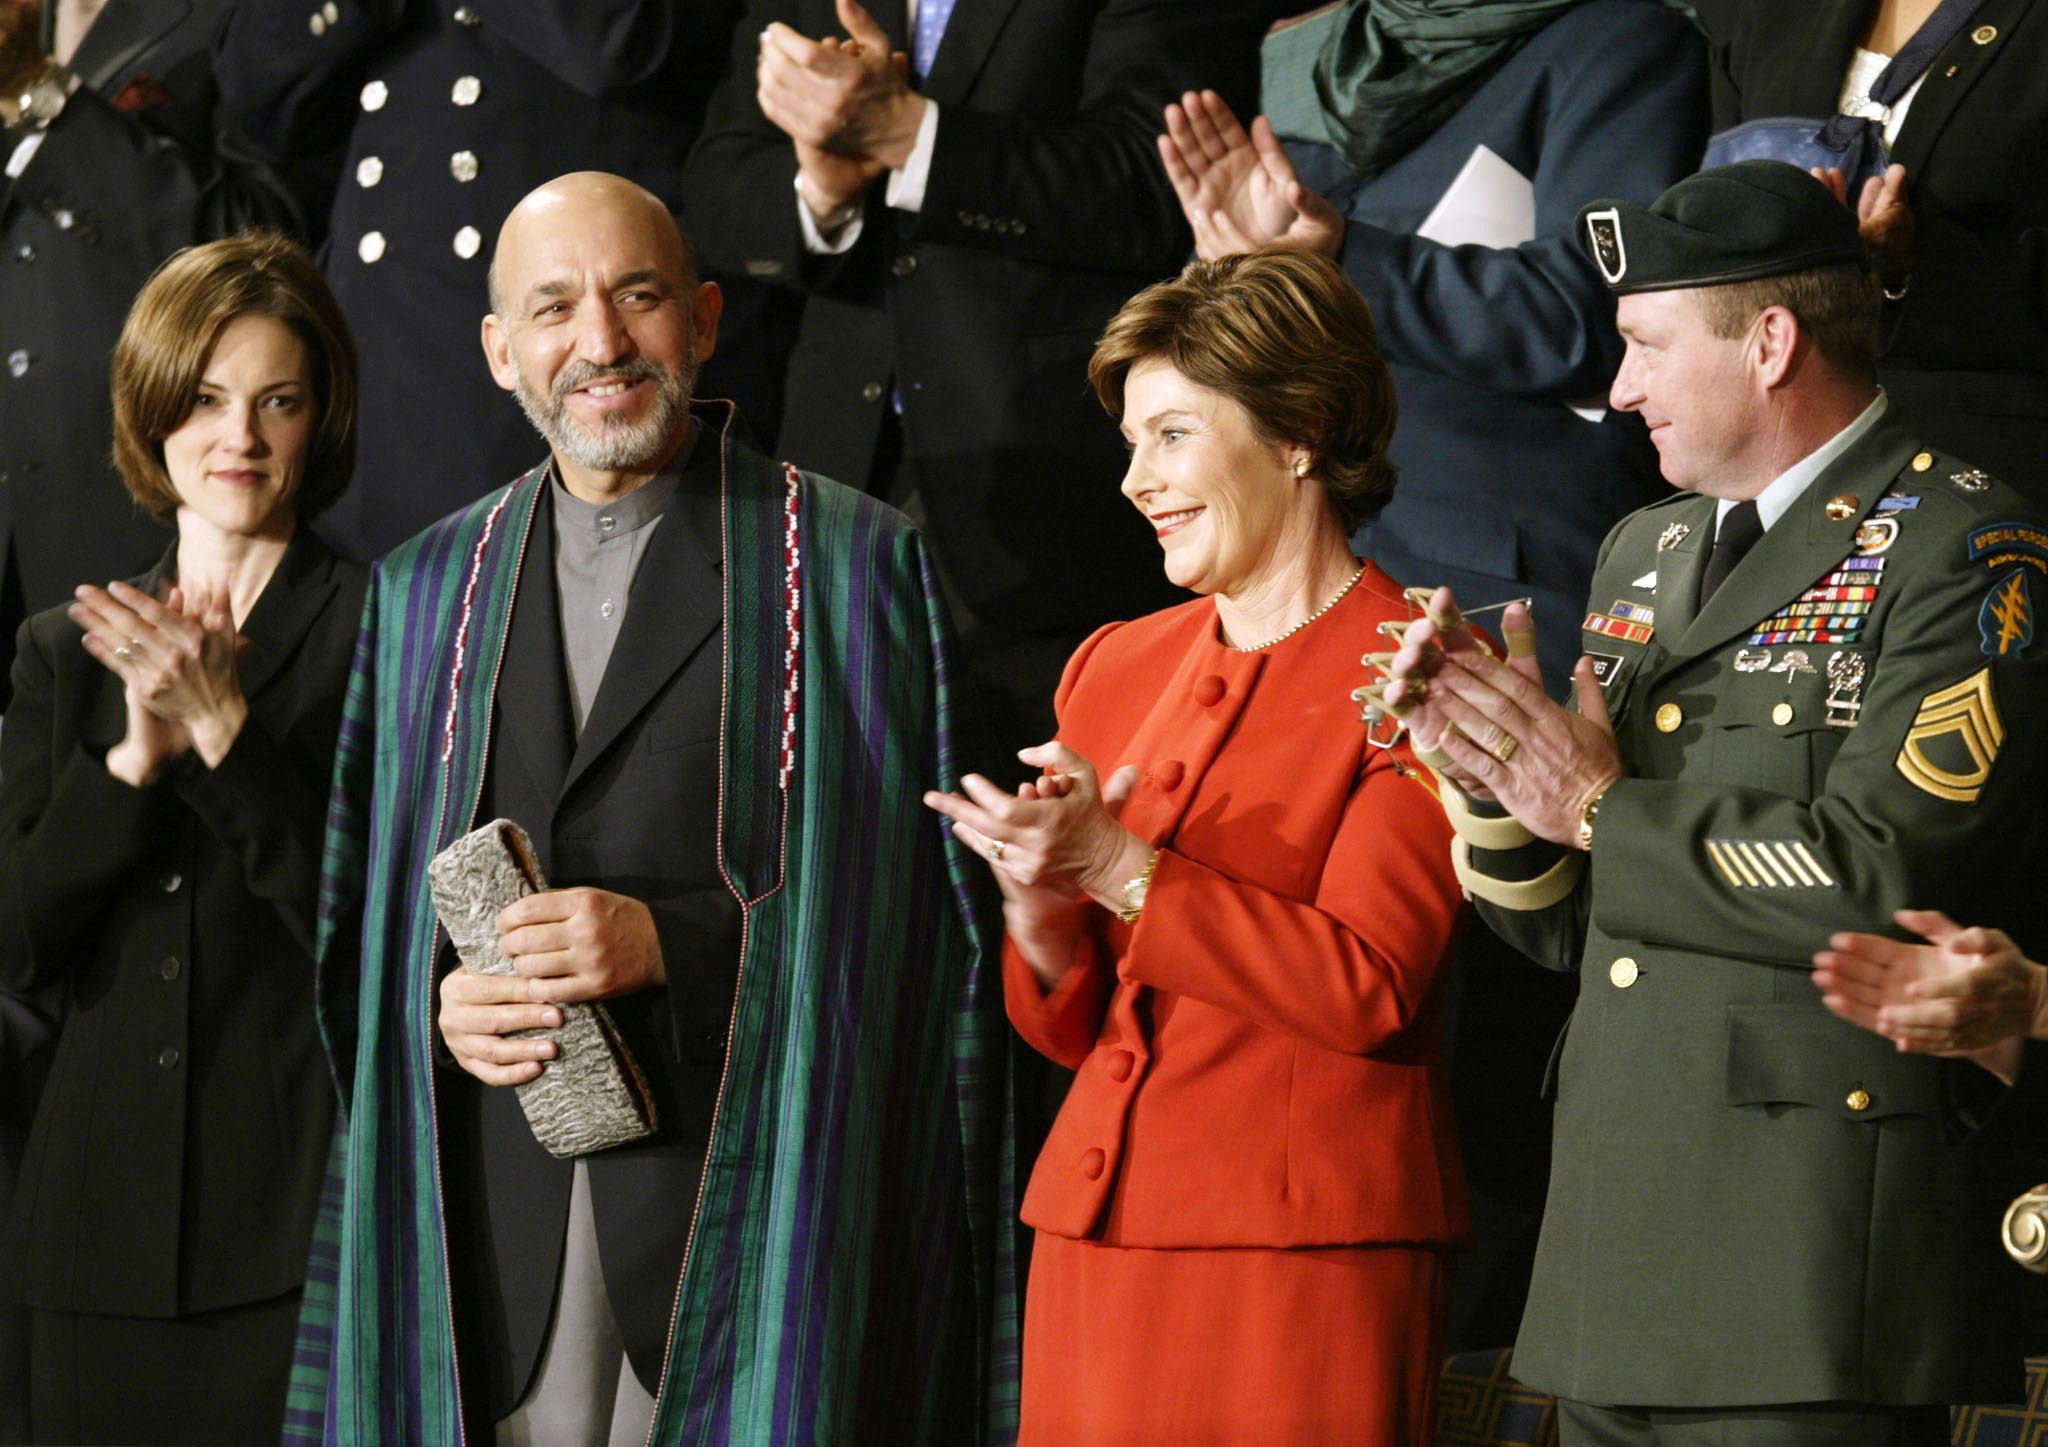 Afghan President Hamid Karzai attending the 2002 State of the Union address